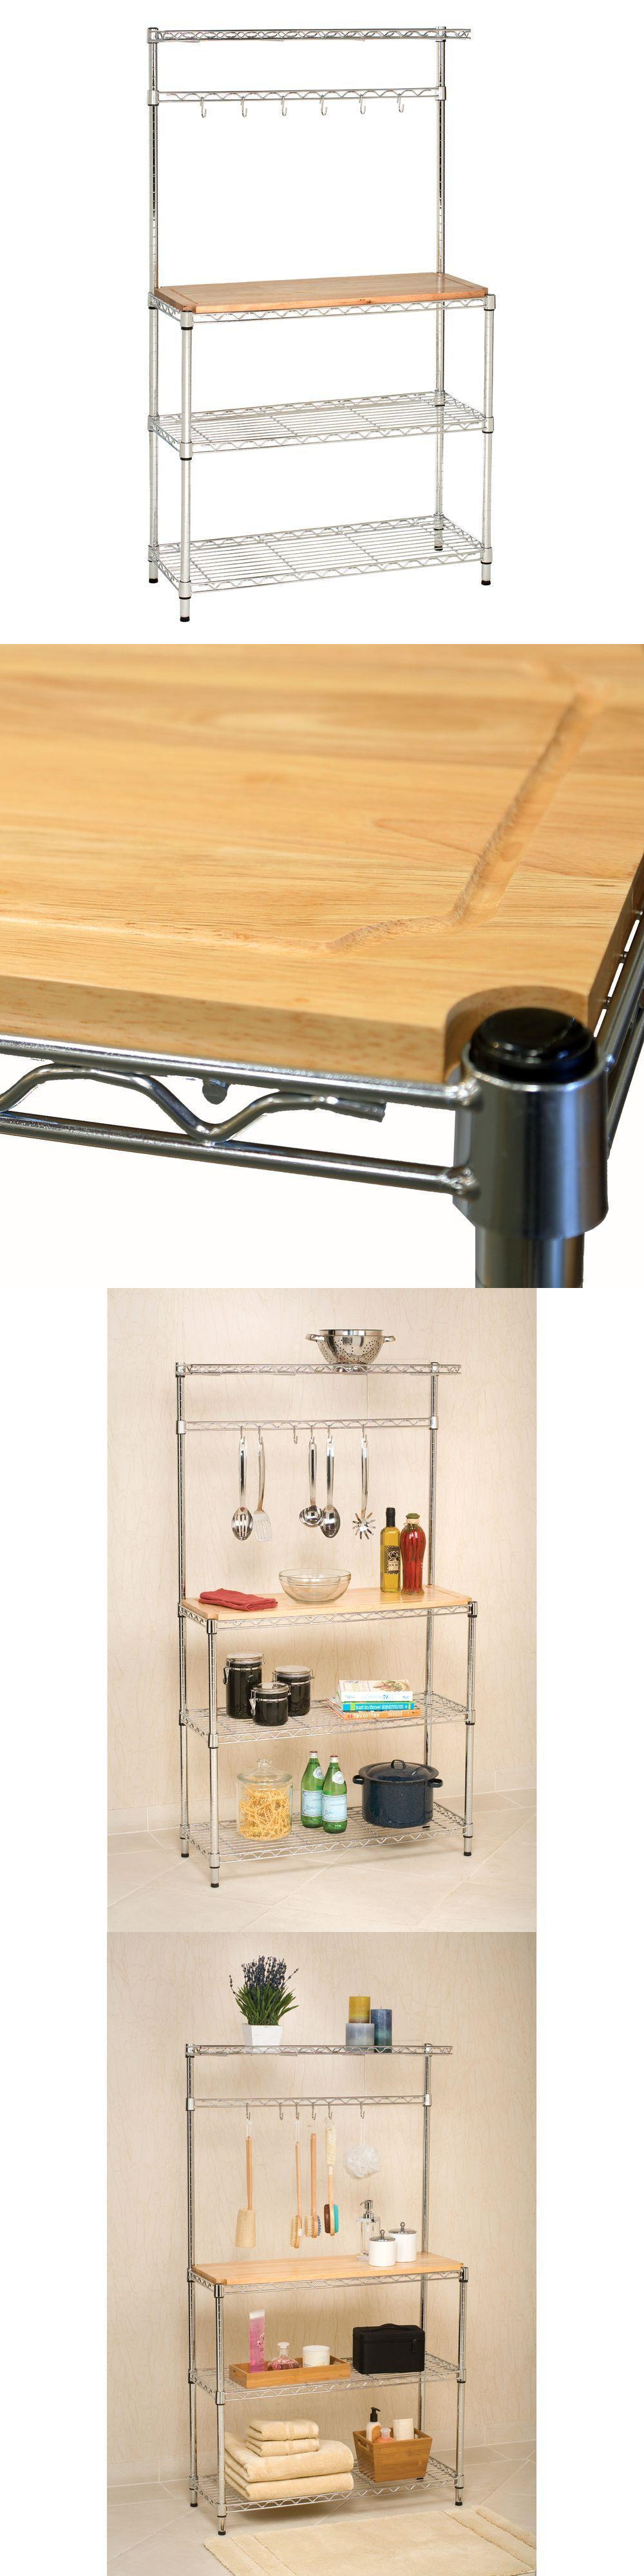 kitchen rack wood with drawers review whitmor item chrome bakers supreme